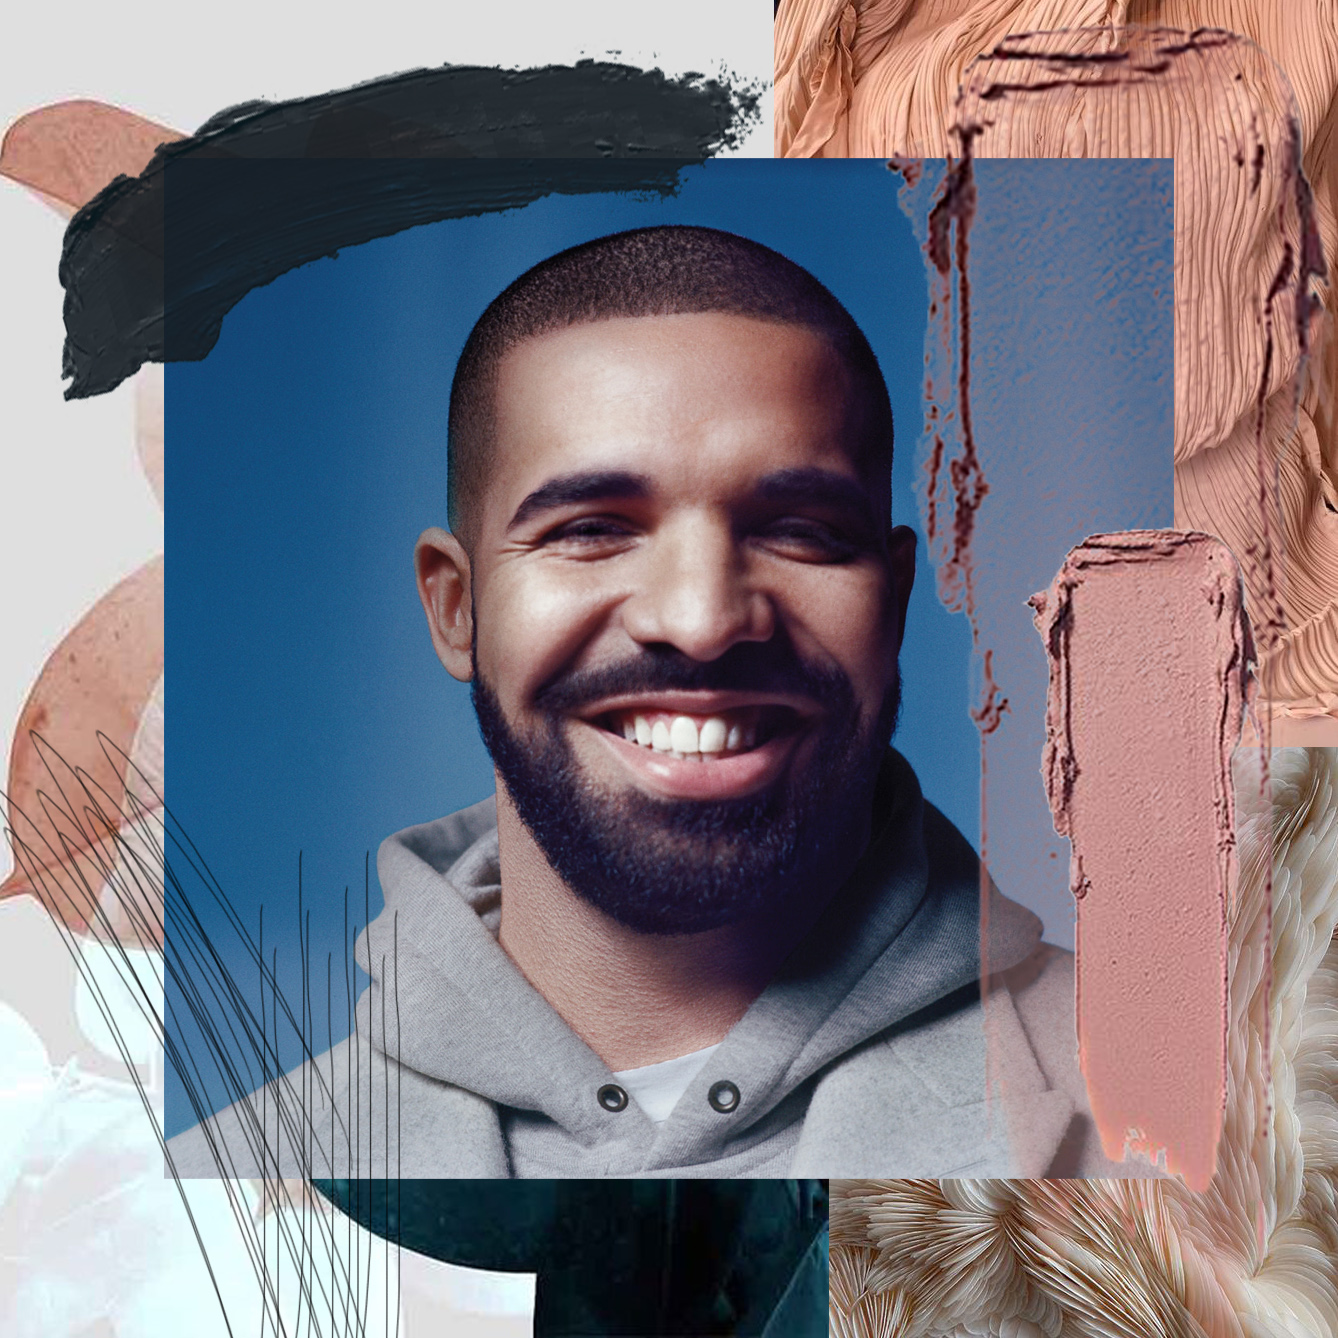 DRAKE IS ONE OF THE WORLD'S TOP STREAMING ARTISTS  / PHOTO CREDIT:  DRAKE  / DESIGN CREDIT:  VANESSA ACOSTA